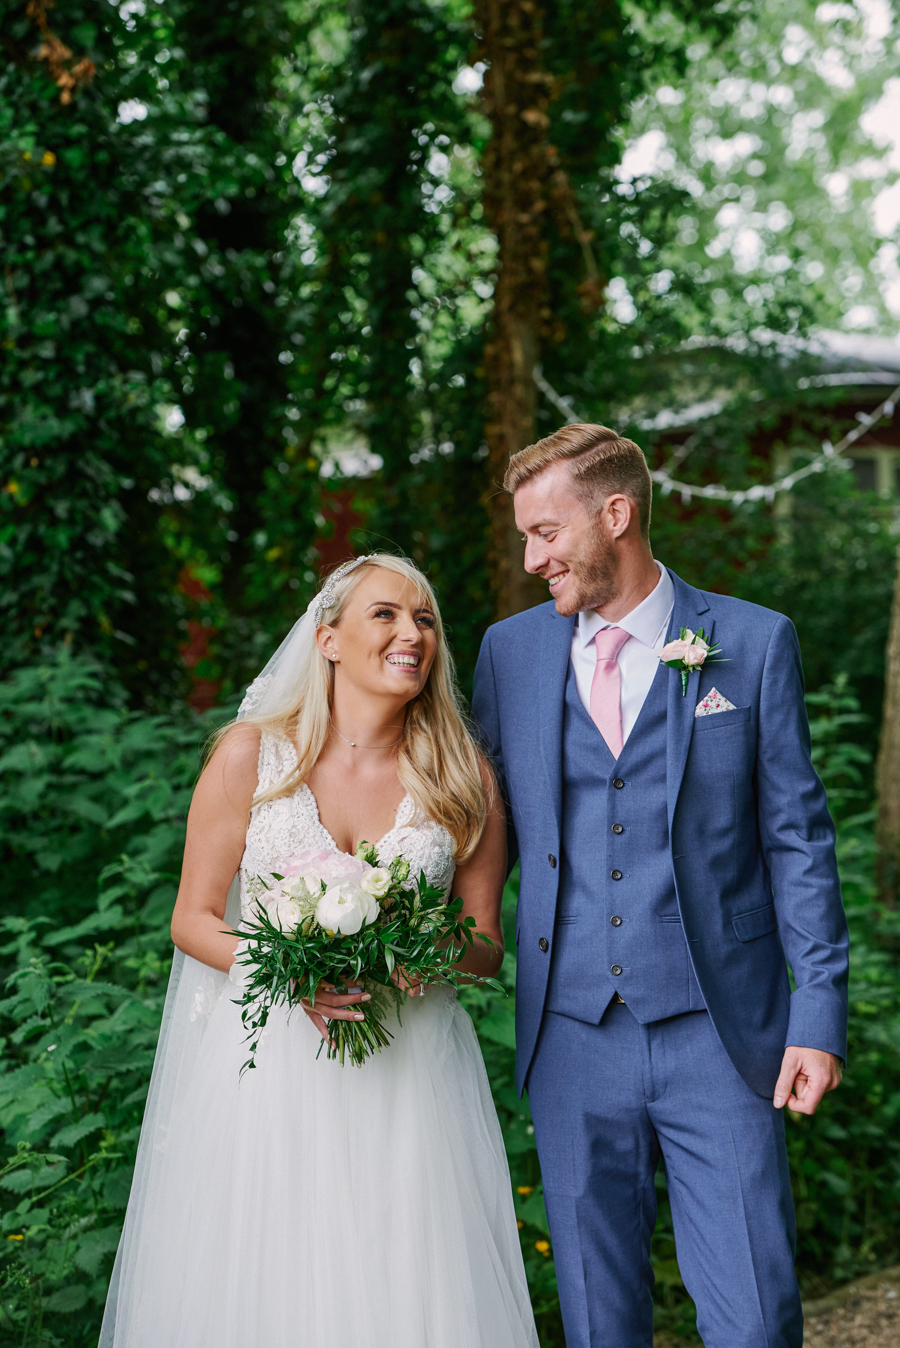 Penny and Ben's funfair wedding at Marleybrook with Rose Images (22)